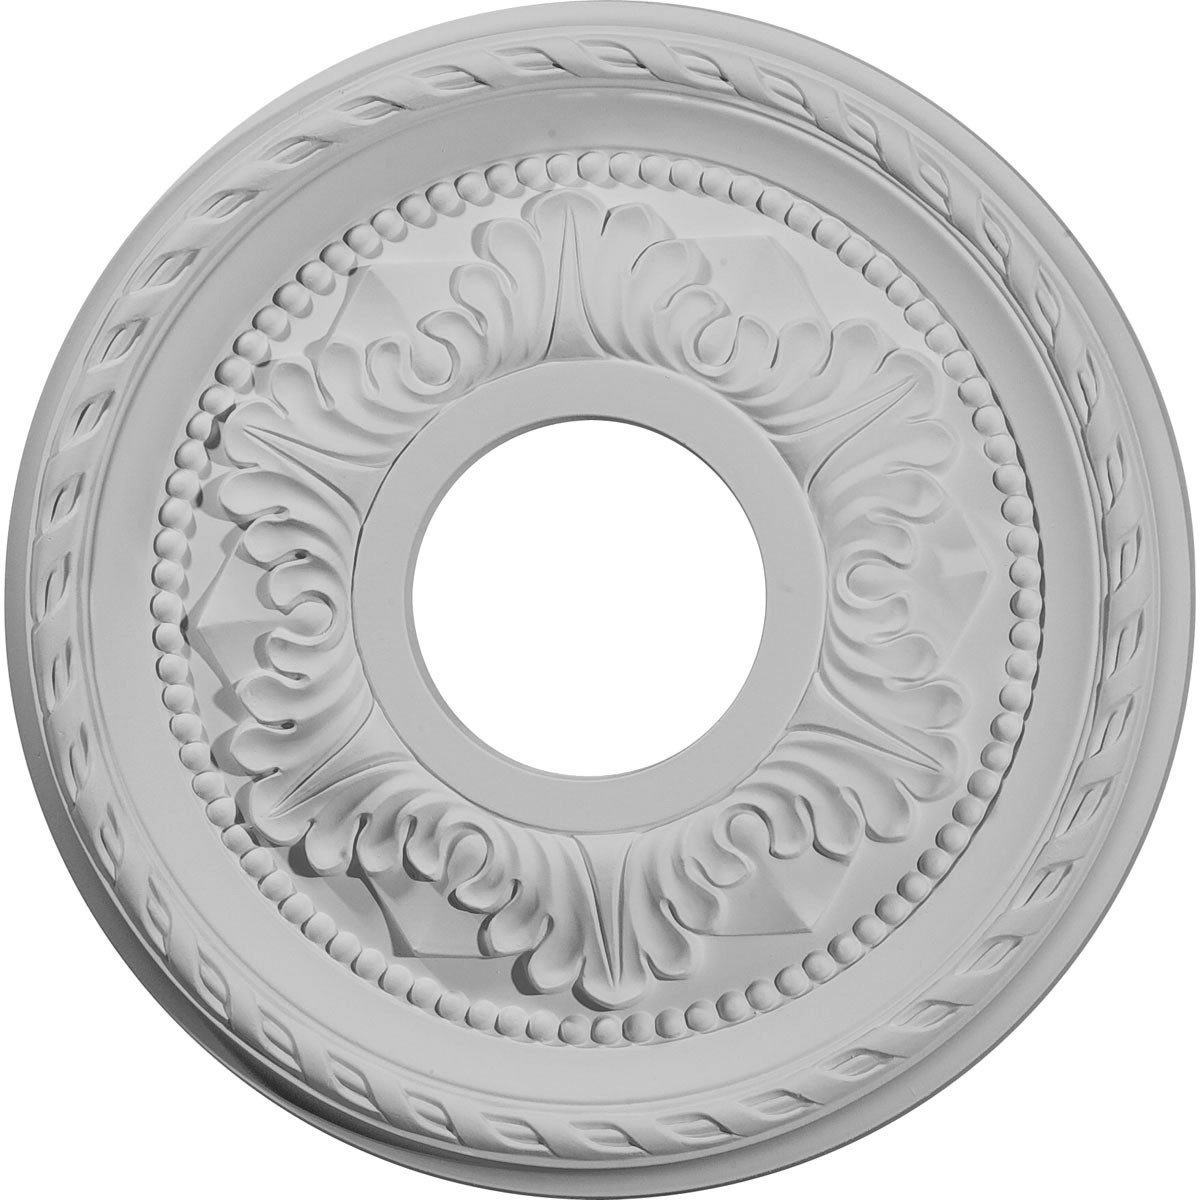 "EM-CM12PM - 12 1/8""OD x 3 1/2""ID x 1""P Palmetto Ceiling Medallion (Fits Canopies up to 4 7/8"")"